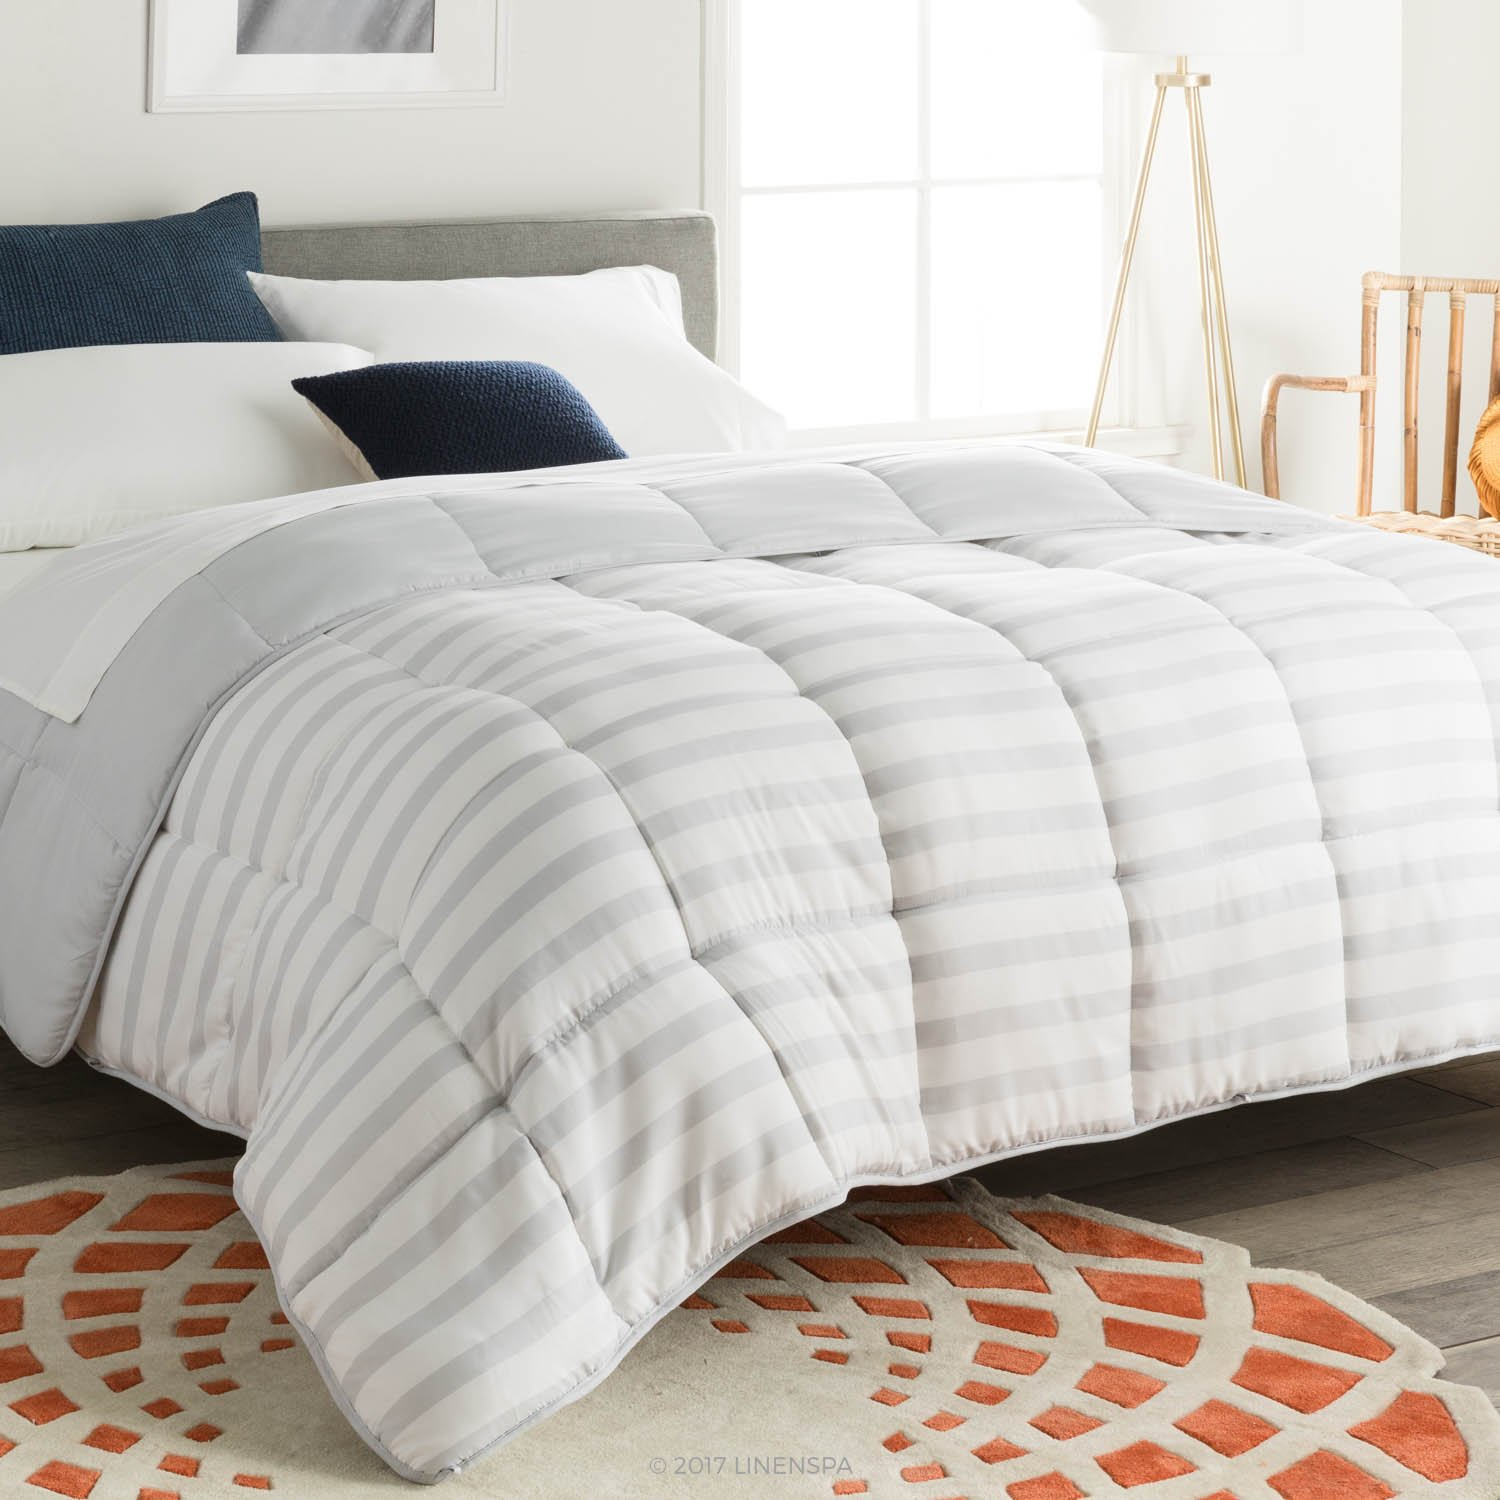 Linenspa Reversible Striped Down Alternative Quilted Comforter with Corner Duvet Tabs - Oversized King